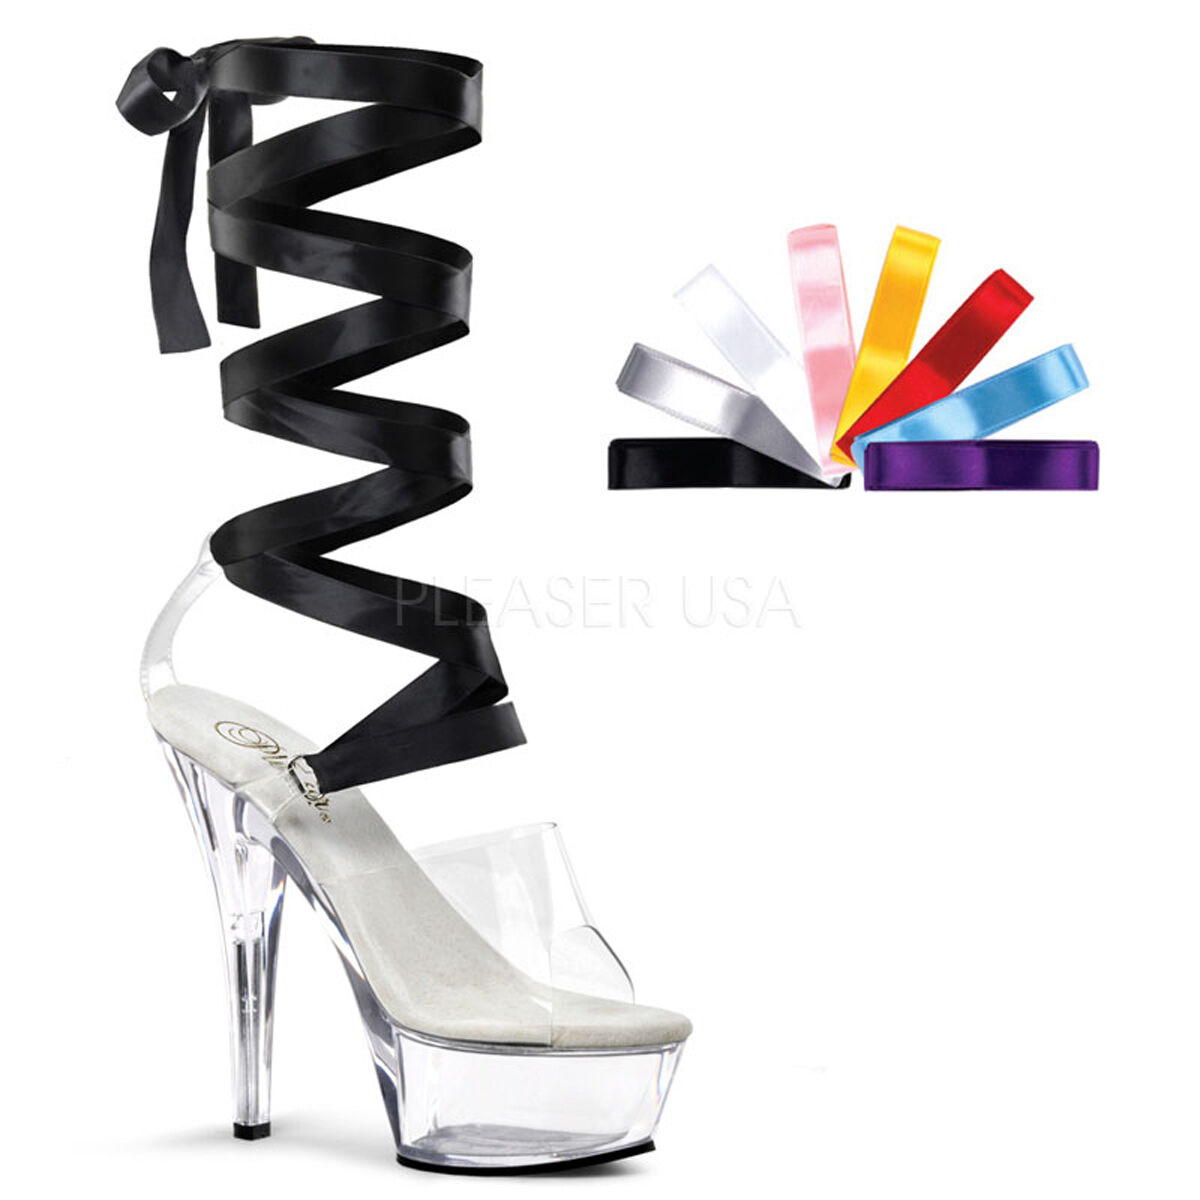 PLEASER Sexy shoes Ribbon Lace Clear Platform 6  Stripper Heels - 8 COLORS